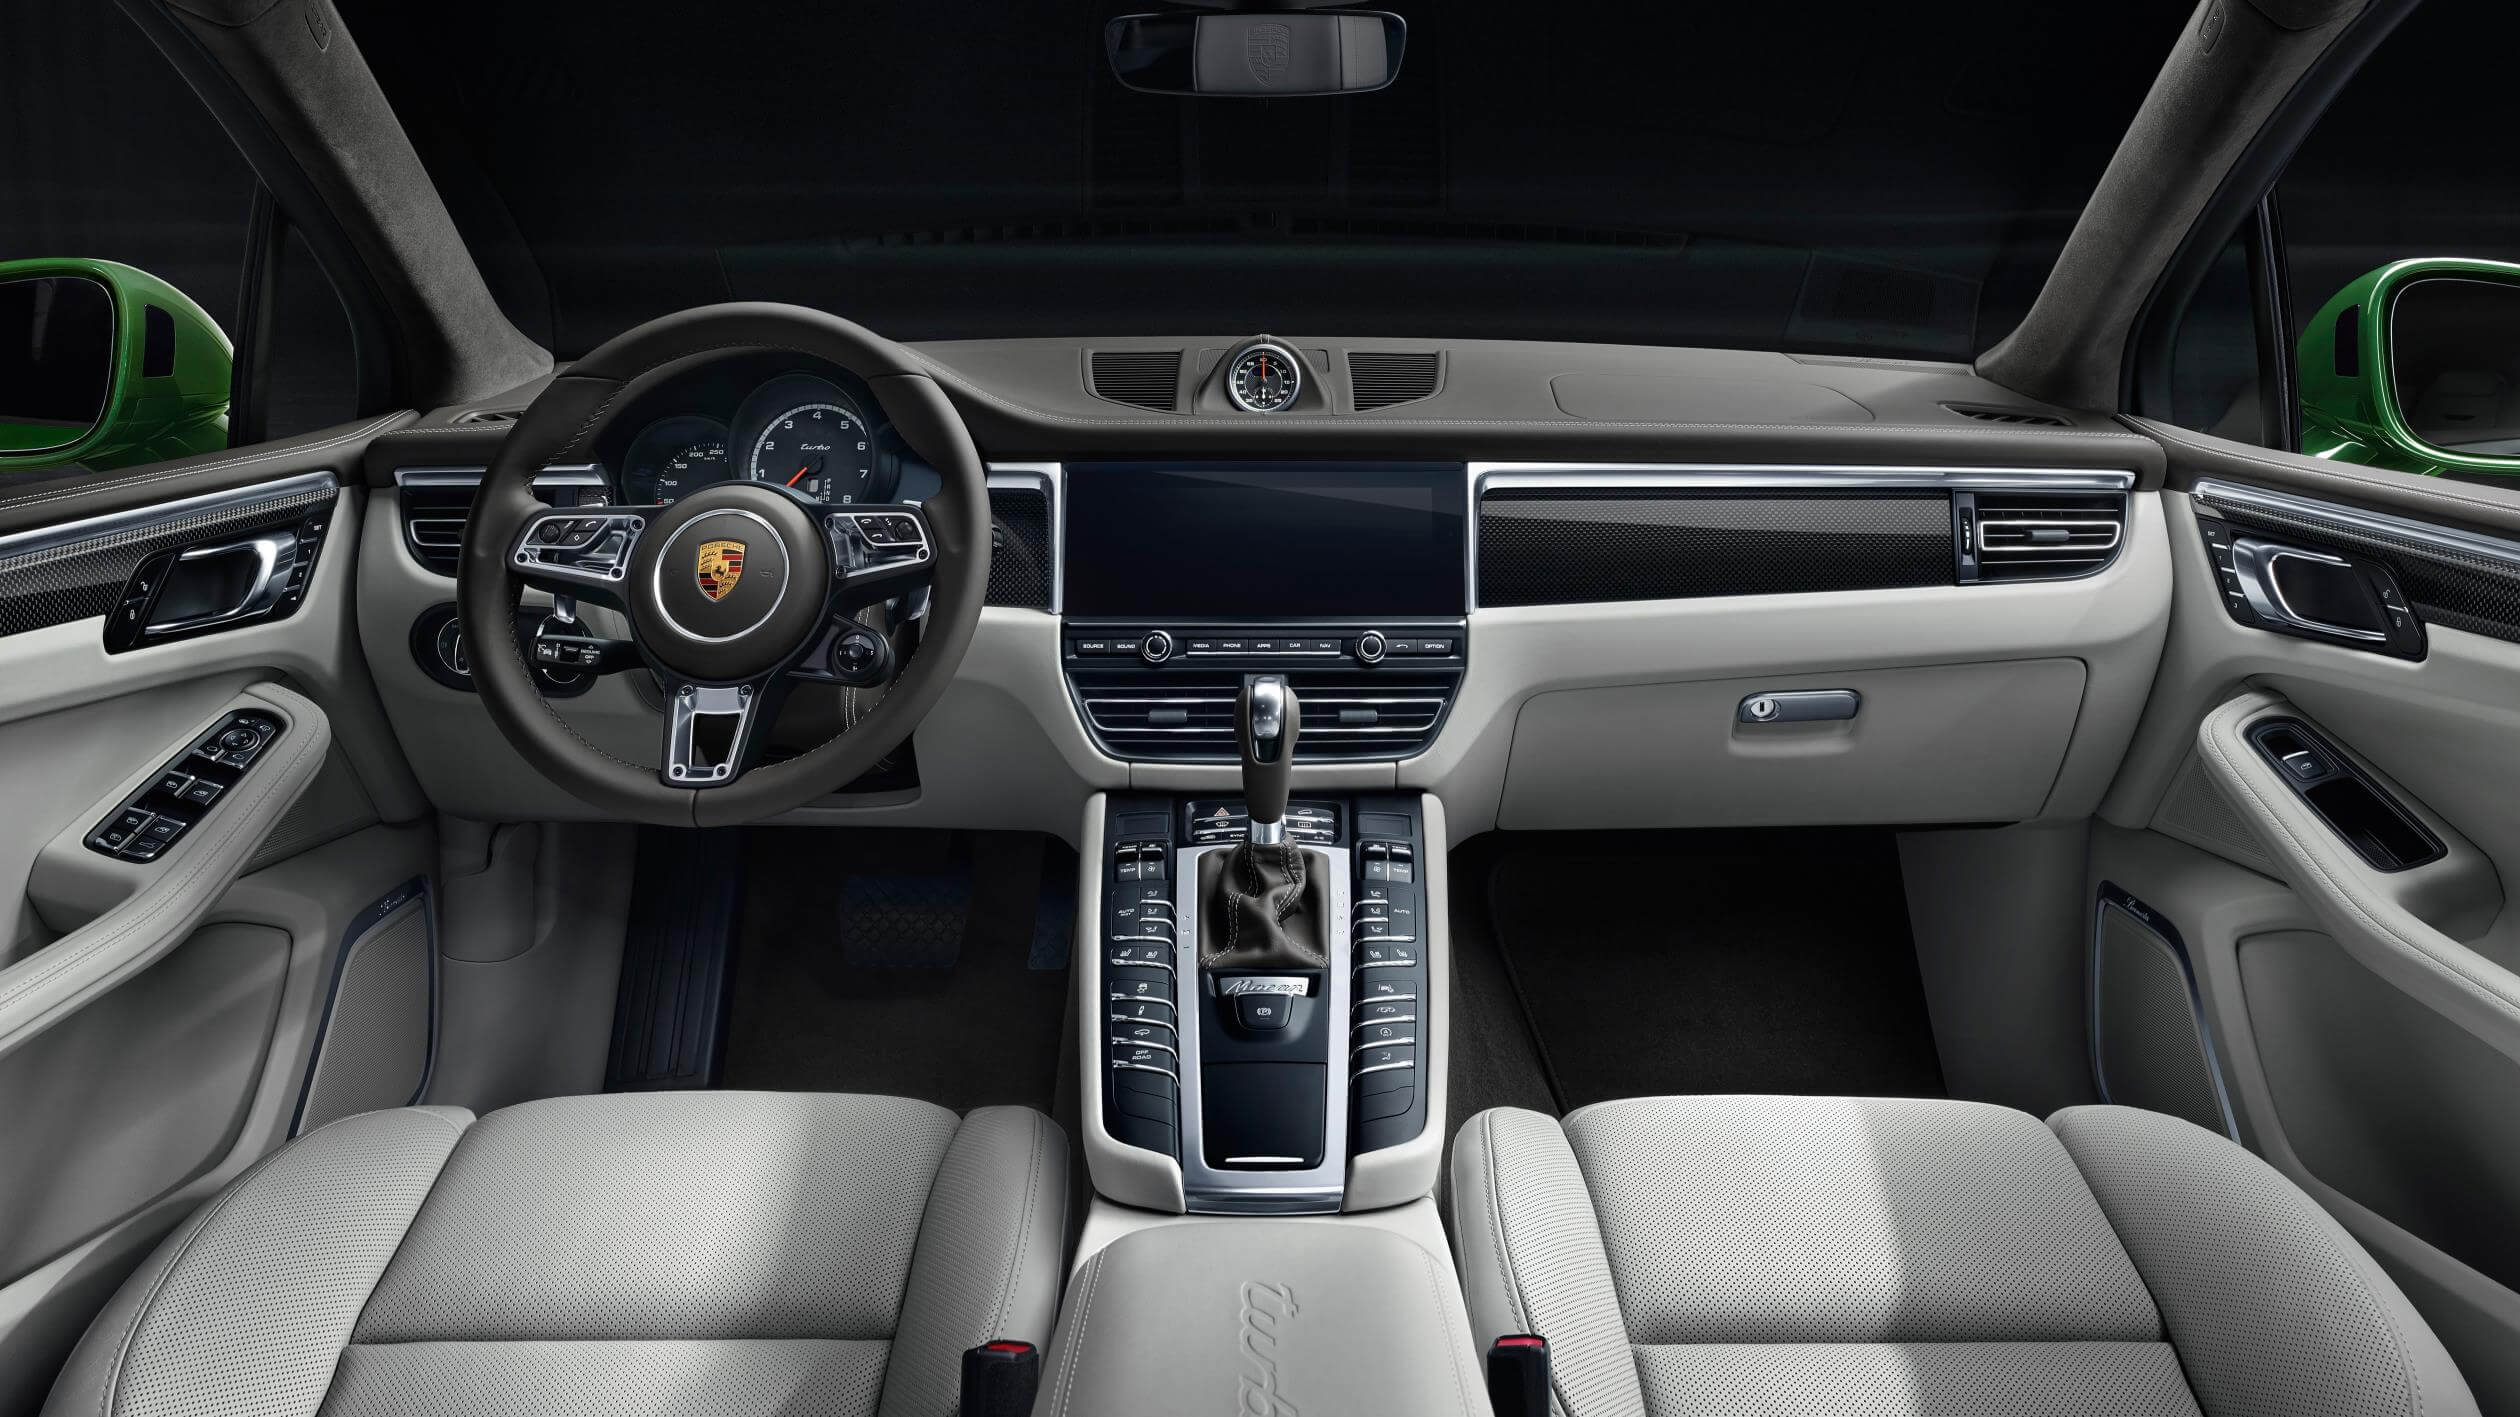 Interior Porsche Macan Turbo 2019